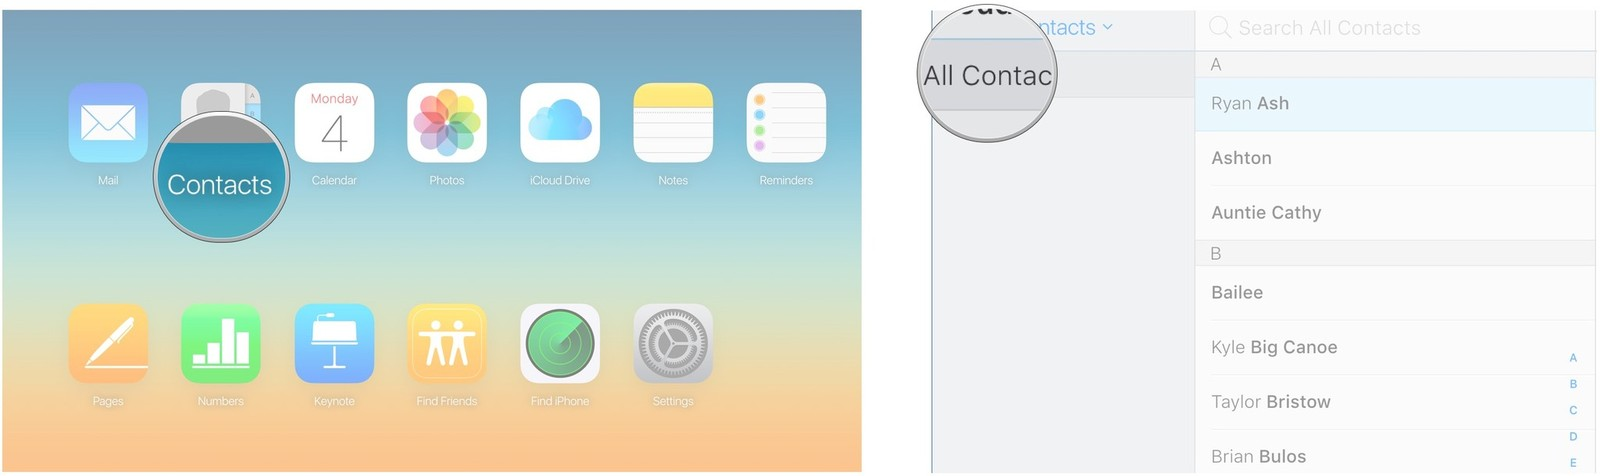 How to transfer contacts from iPhone to Android on OPPO | OPPO Australia